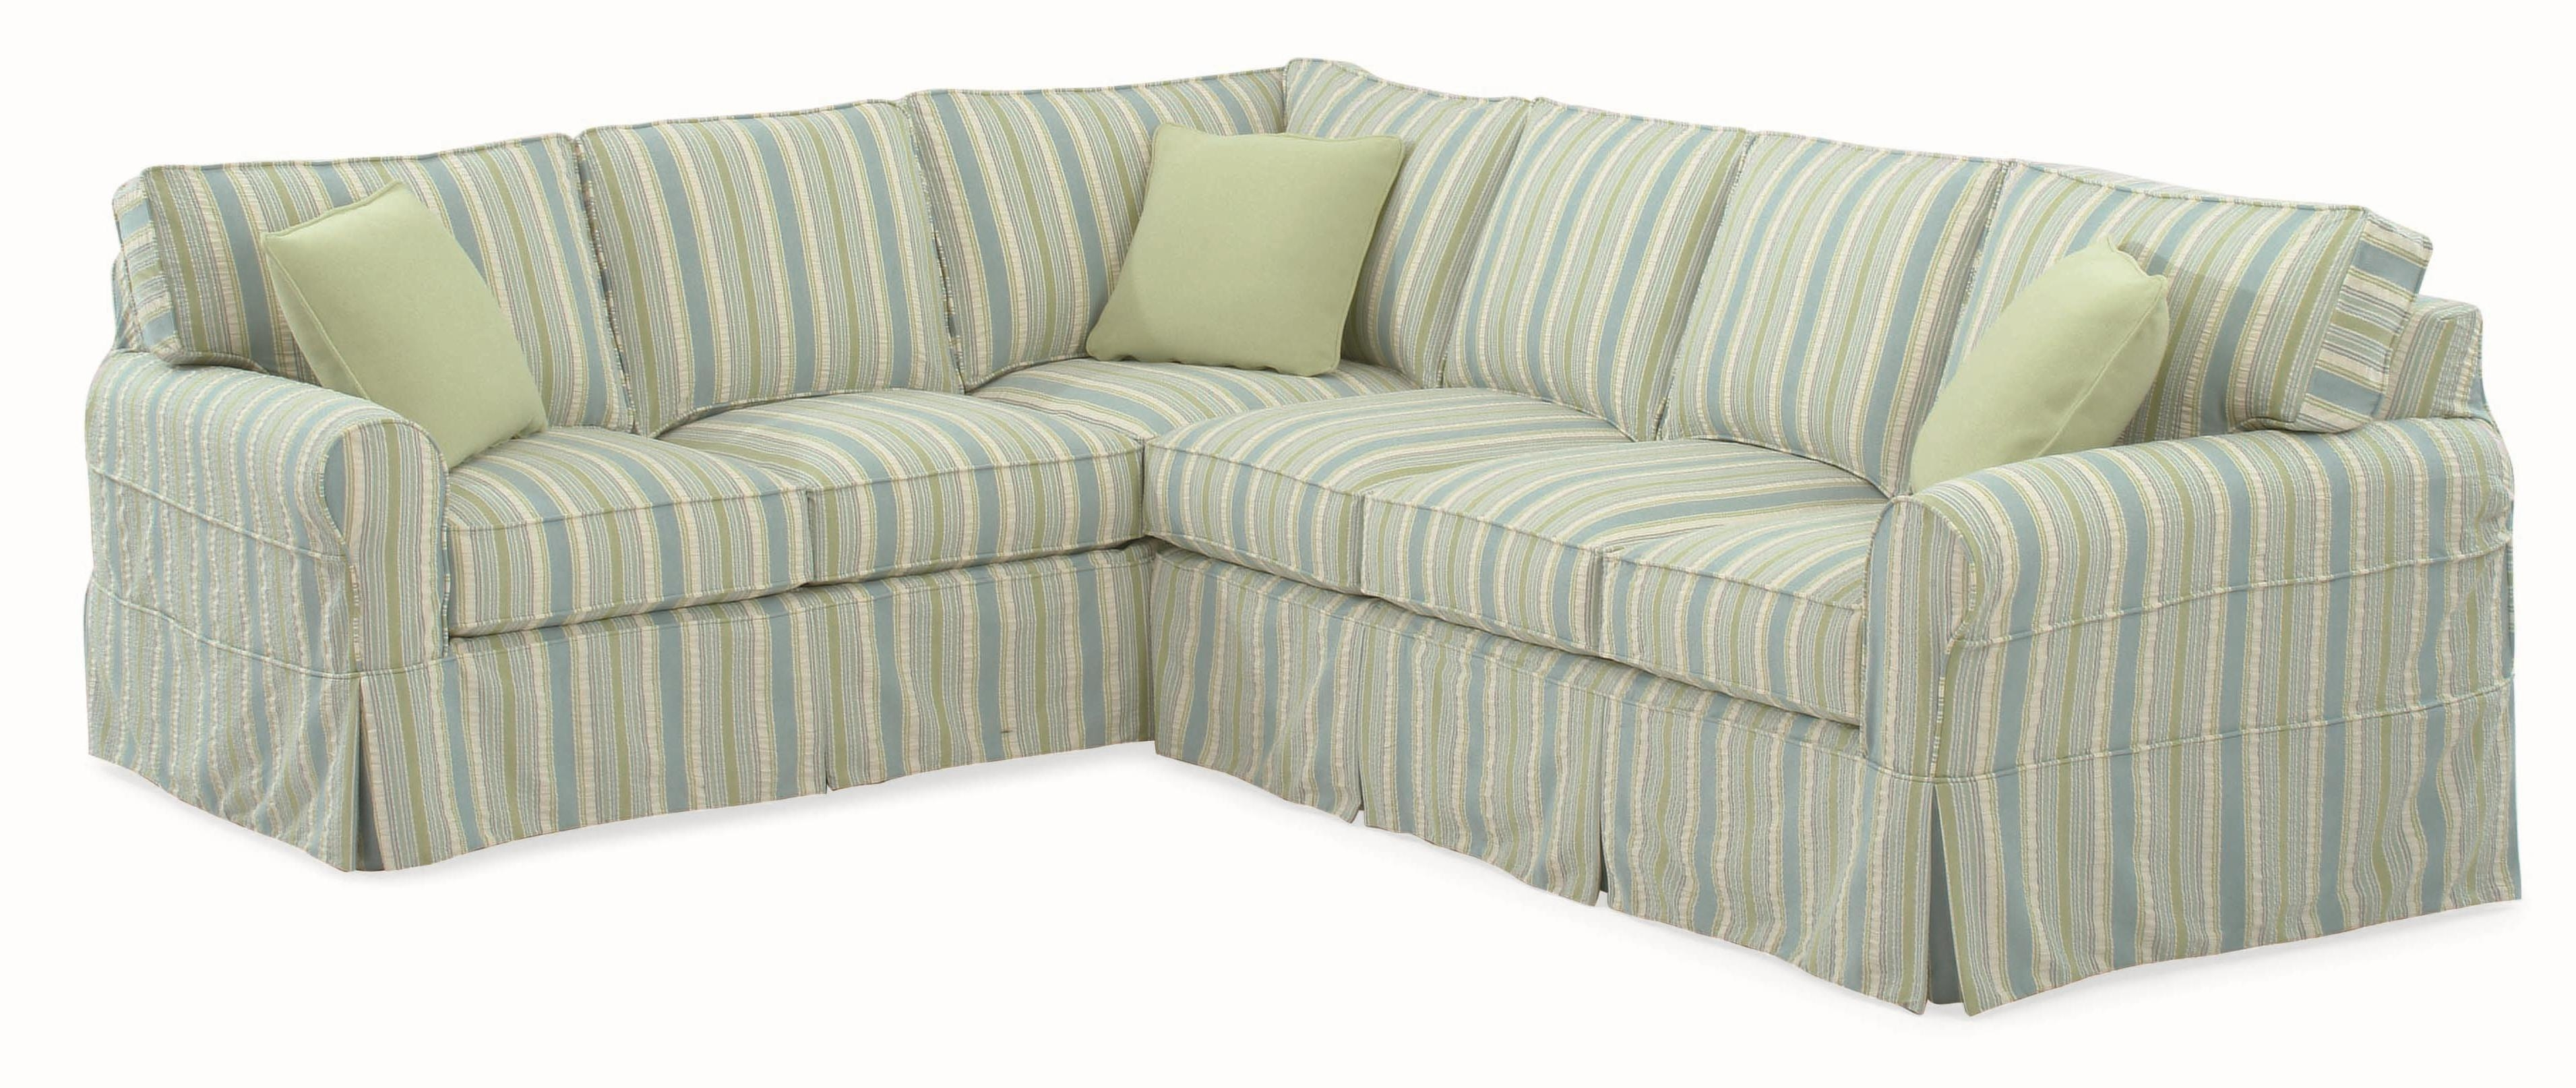 Furniture: Creates Clean Foundation That Complements Decorating With Regard To Slipcover Style Sofas (Image 7 of 20)